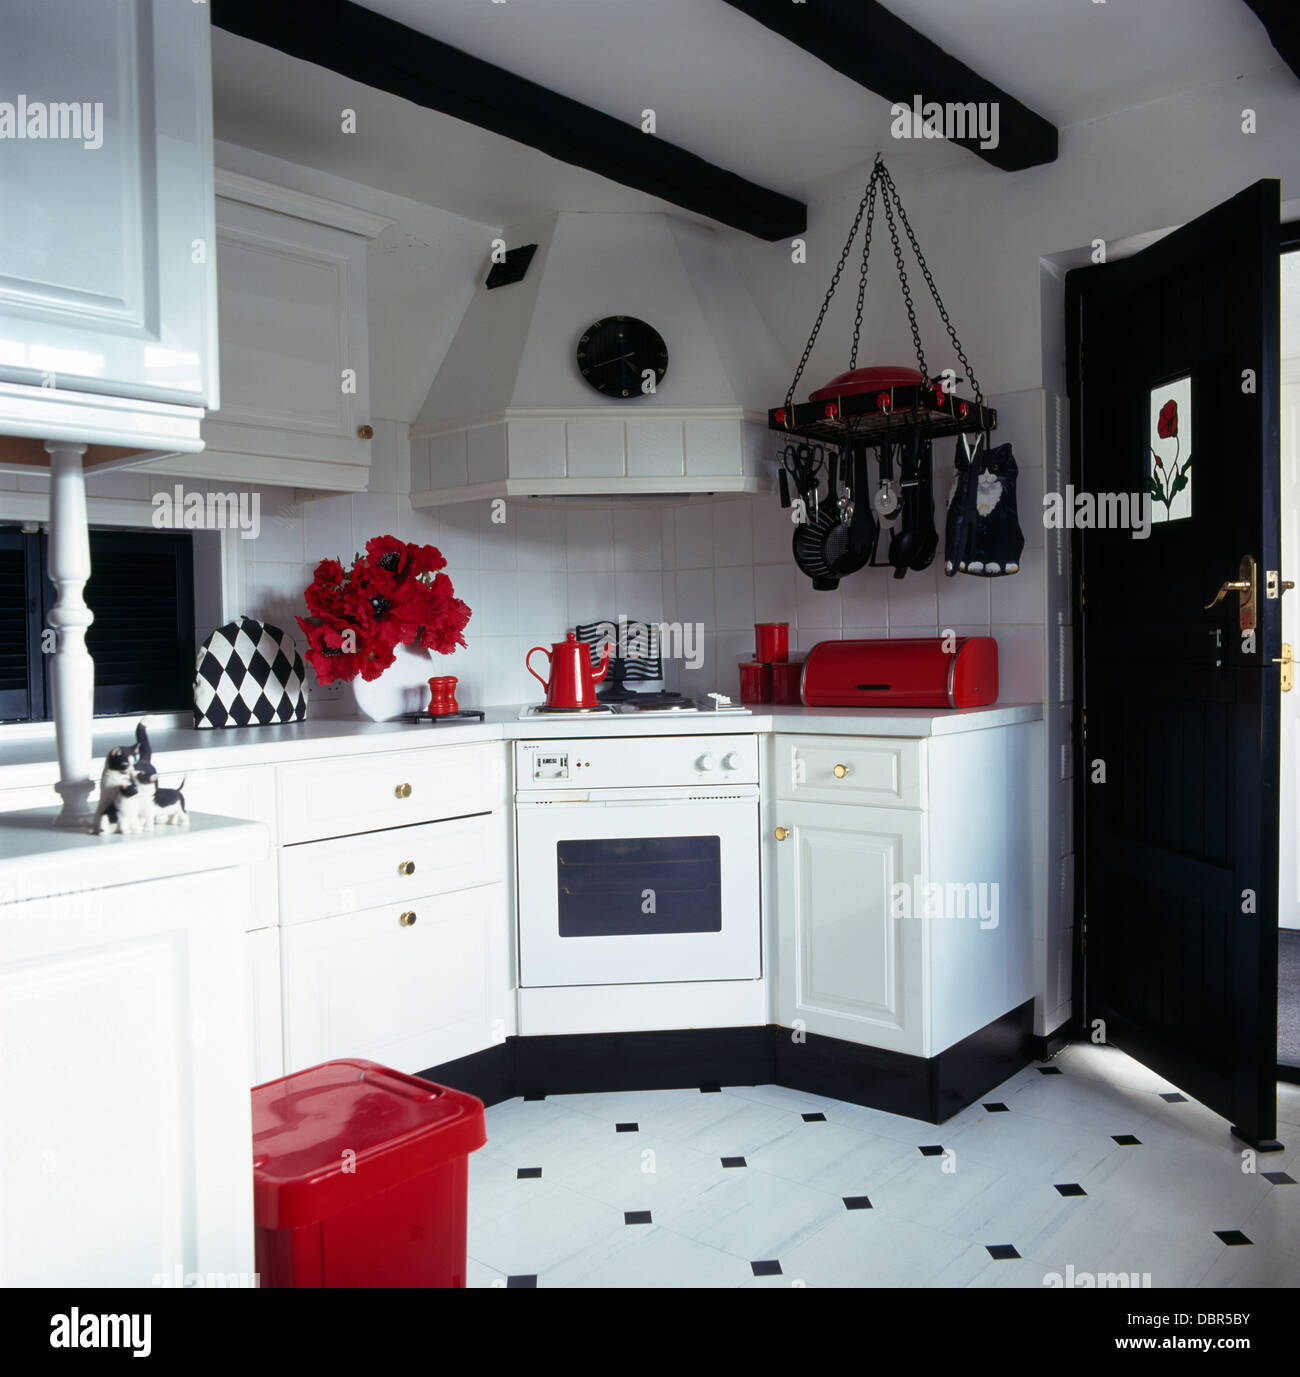 Red accessories in black and white kitchen with black